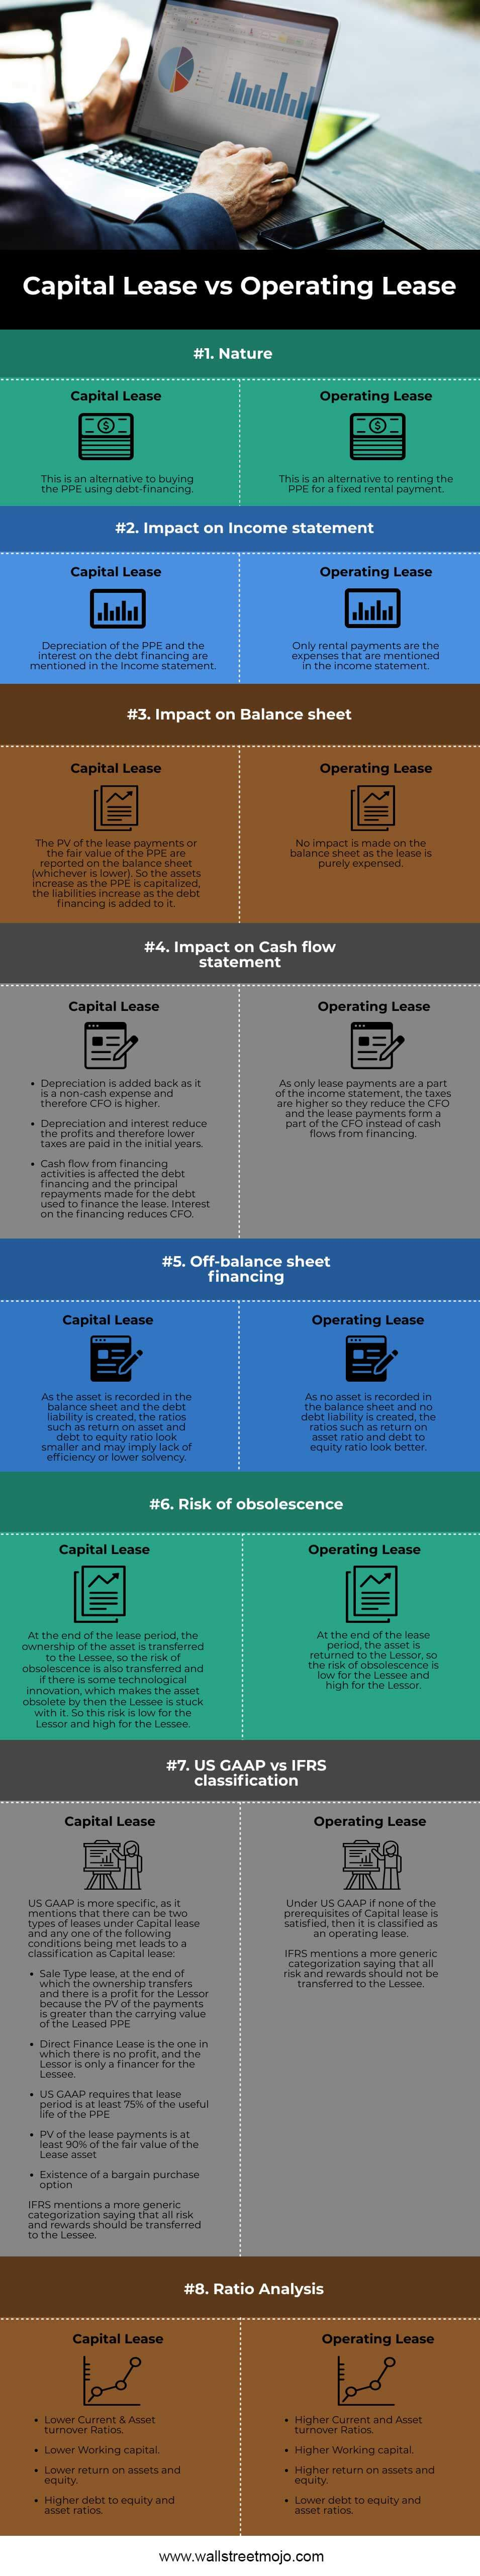 Capital-Lease-vs-Operating-Lease-info